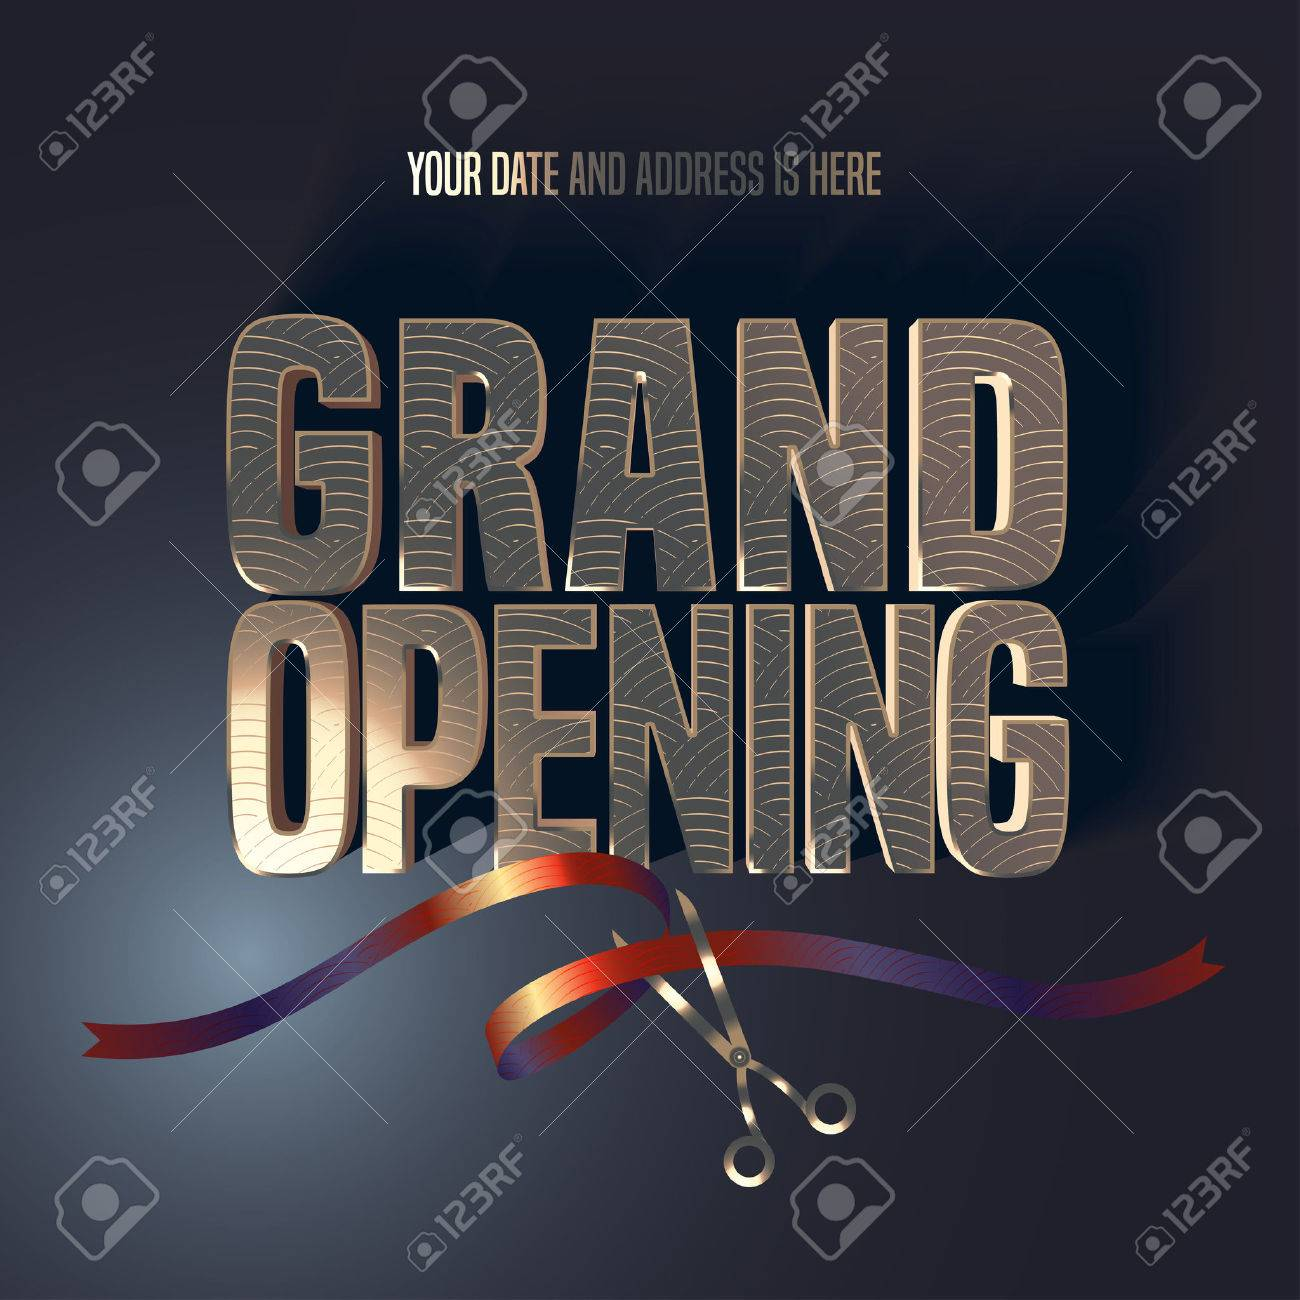 Grand opening vector illustration, background, banner. Design element with elegant premium style sign, scissors cutting red ribbon for opening ceremony - 61581624